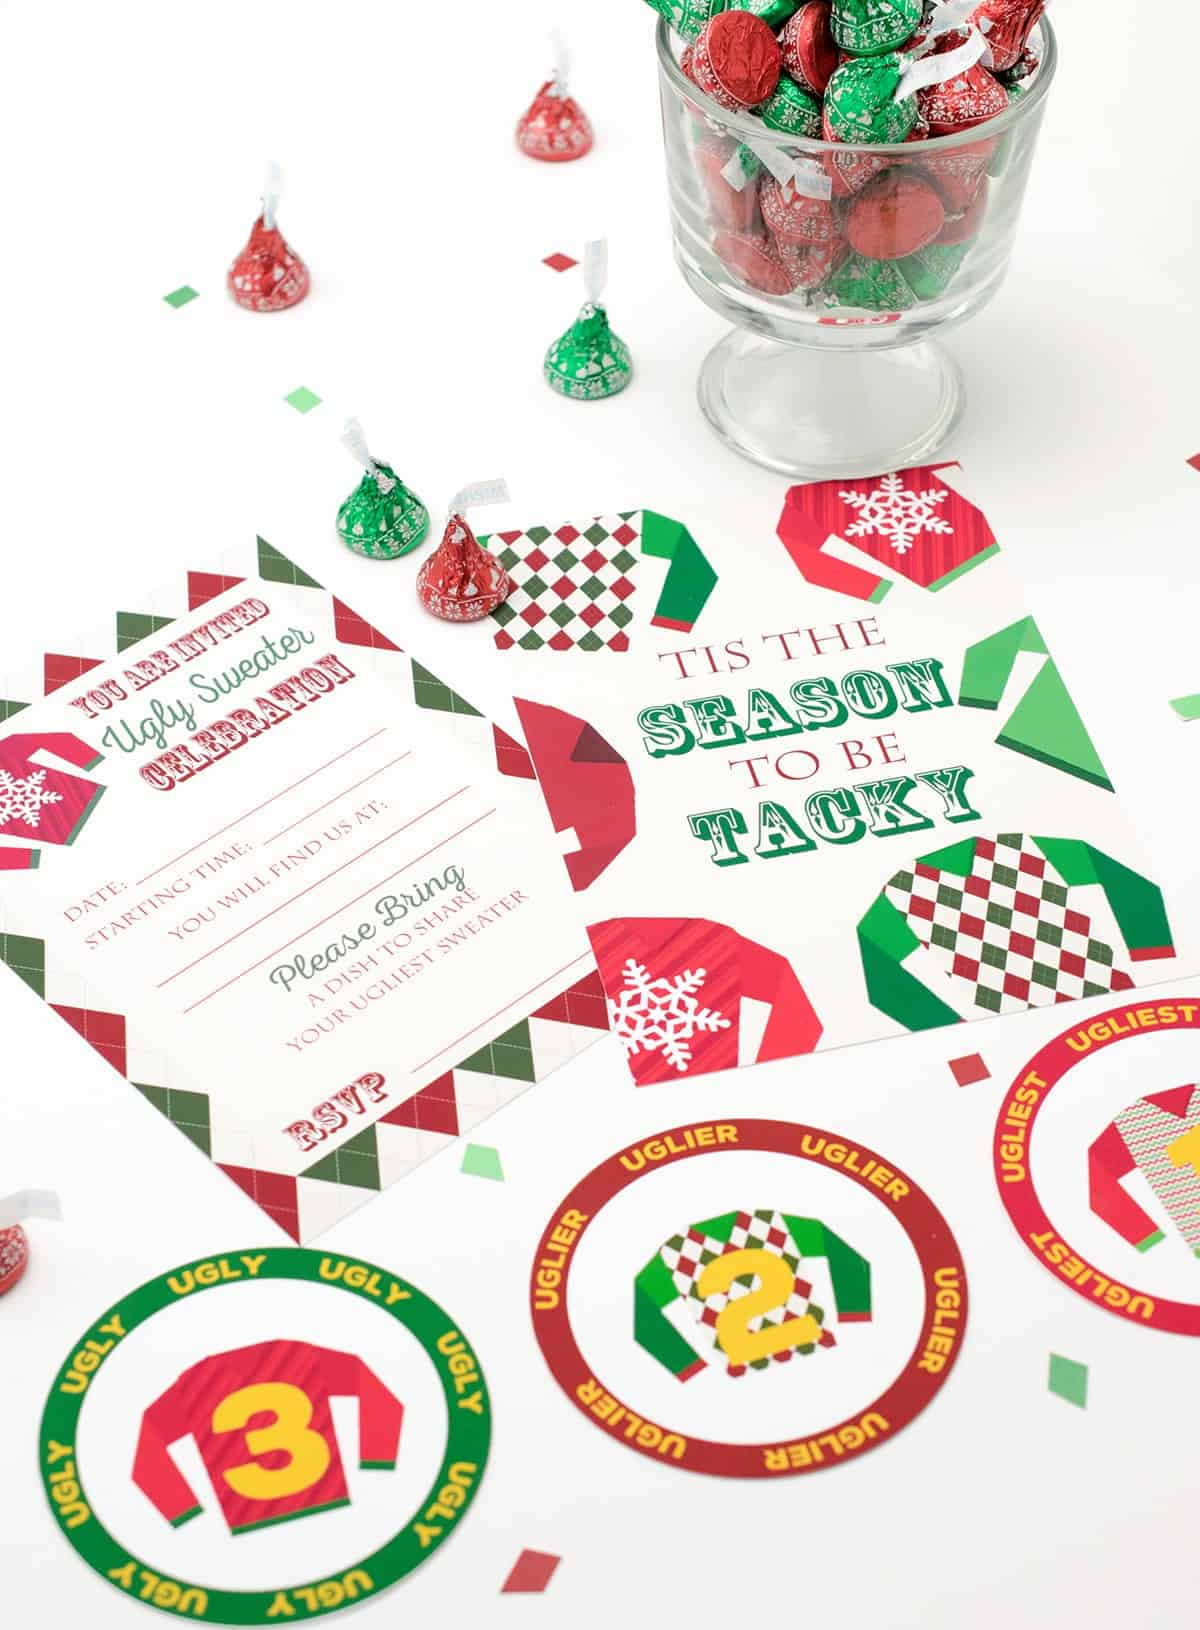 Ugly Sweater Party Invitations and Medals Free Printable